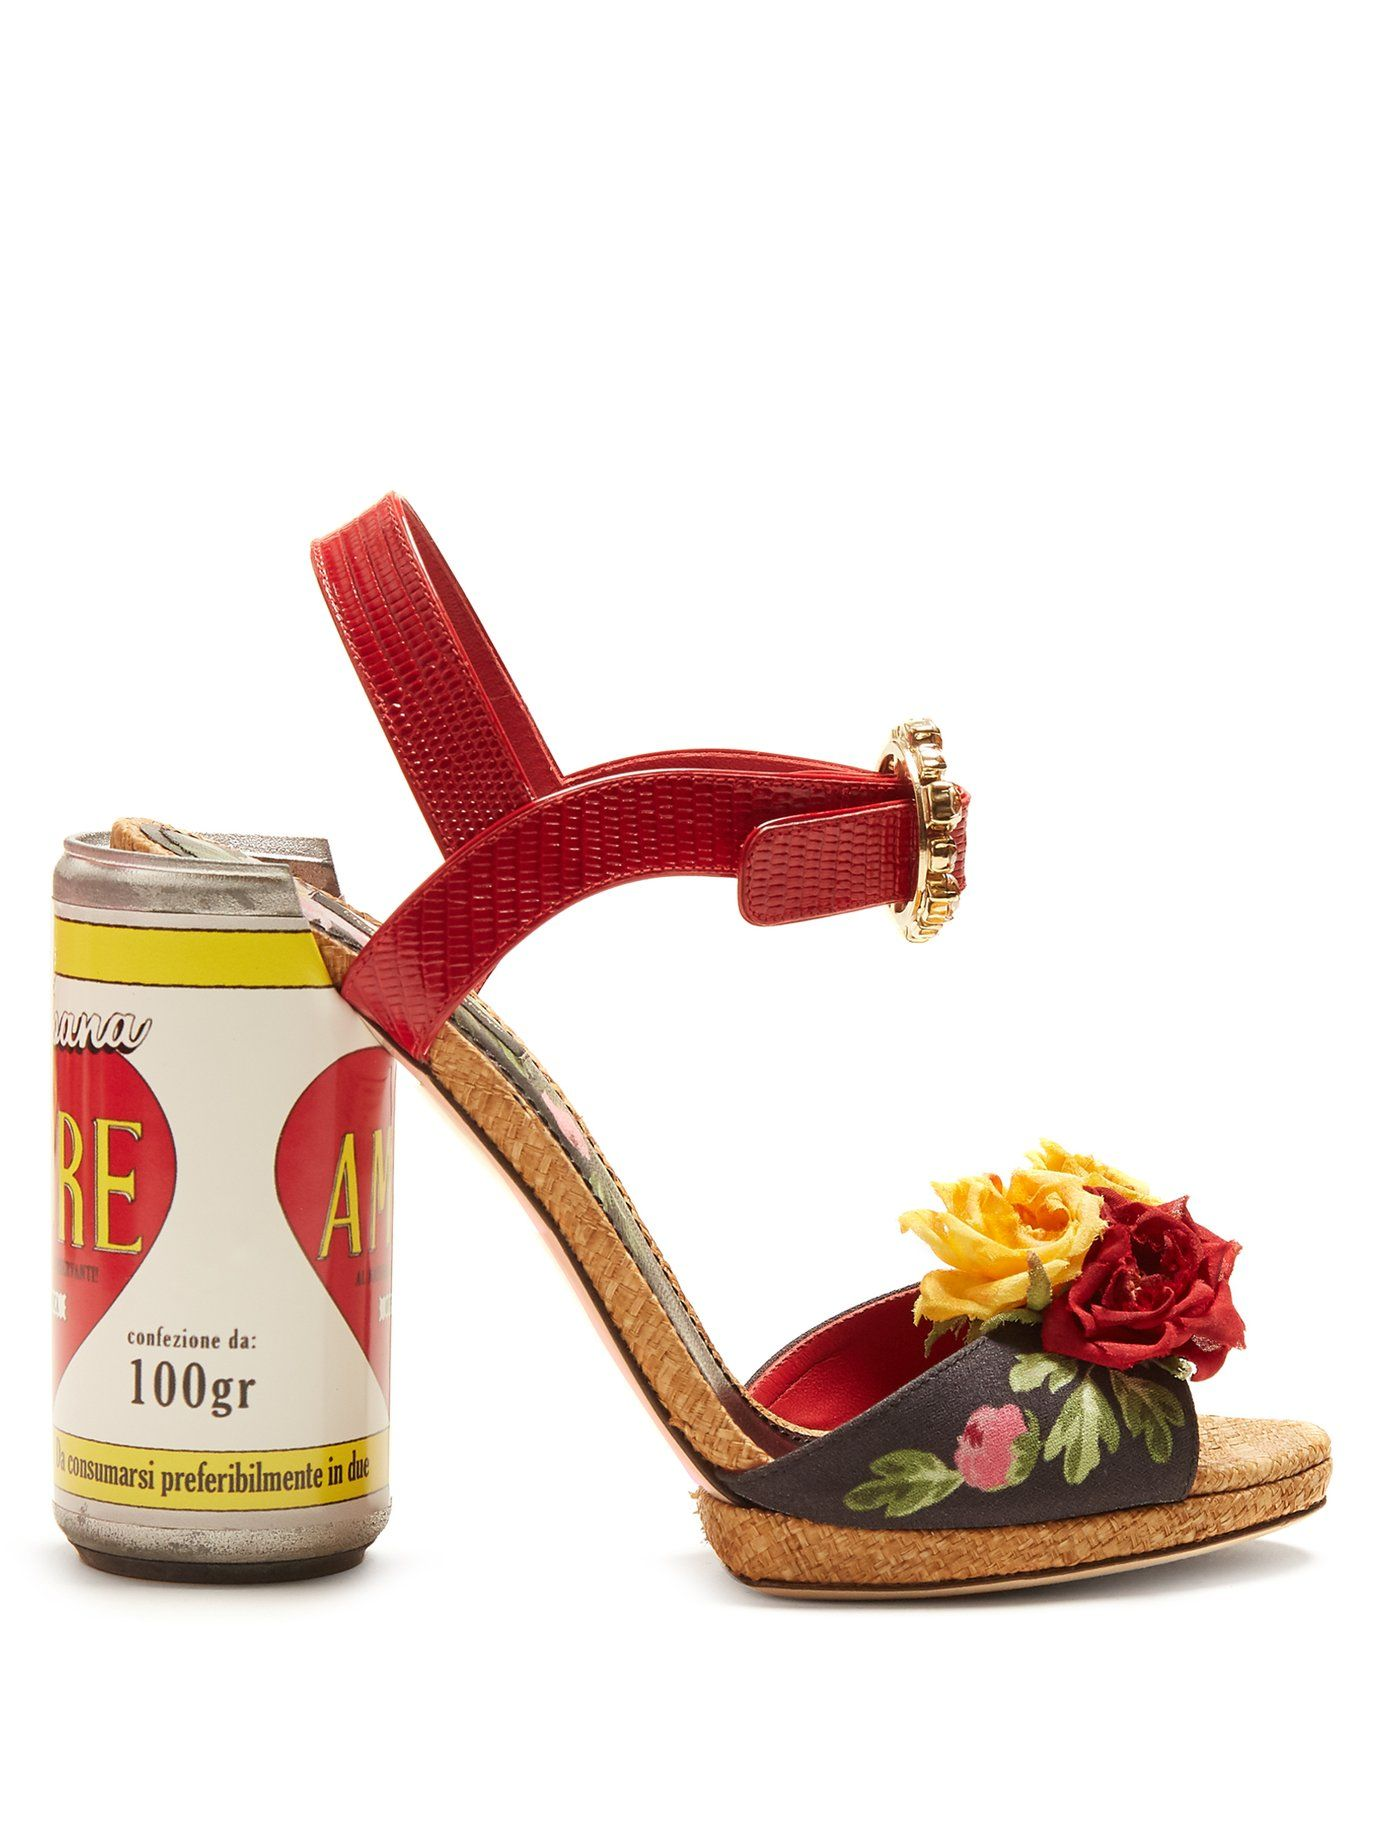 cdee4ae0f Dolce   Gabbana Amore floral-embellished sandals